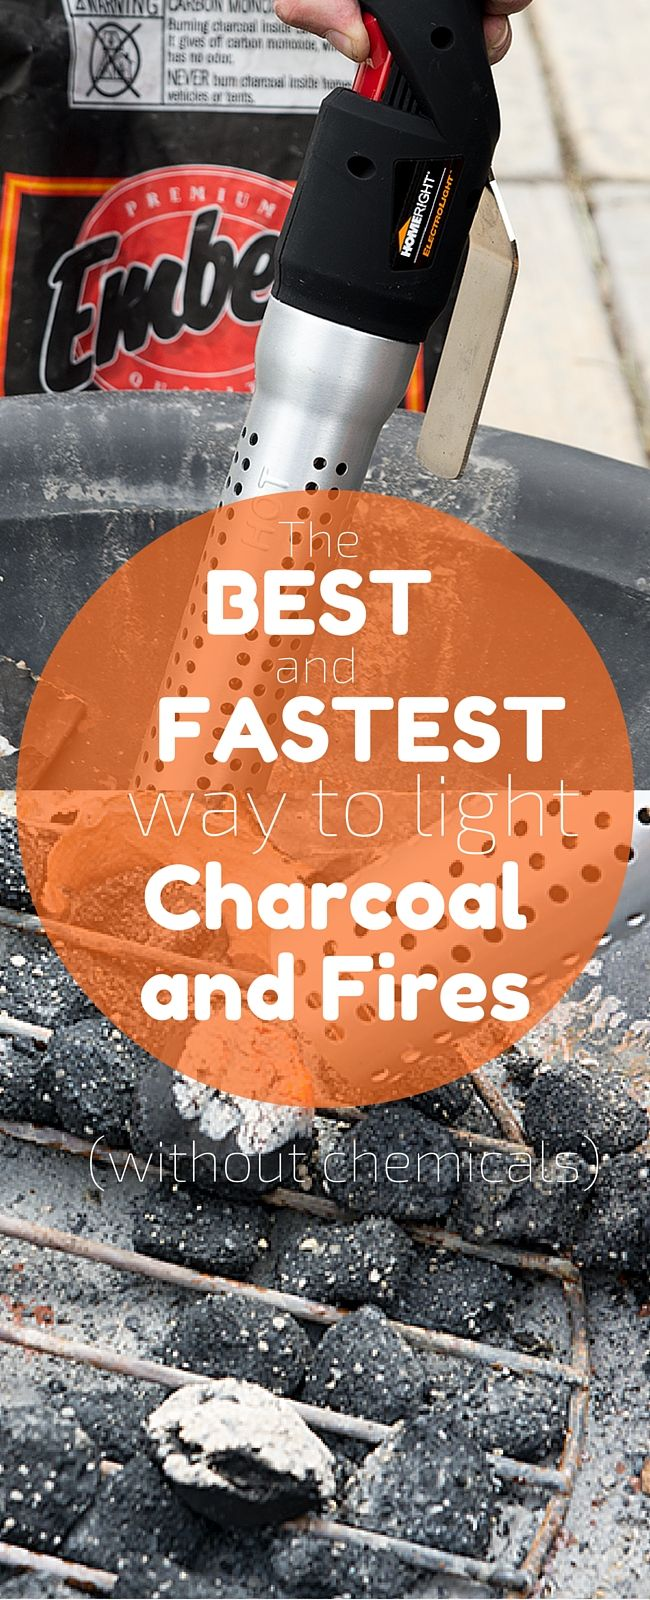 The Best And Fastest Way To Light Charcoal And Fires | Outdoor Cooking,  Grilling And Life Hacks